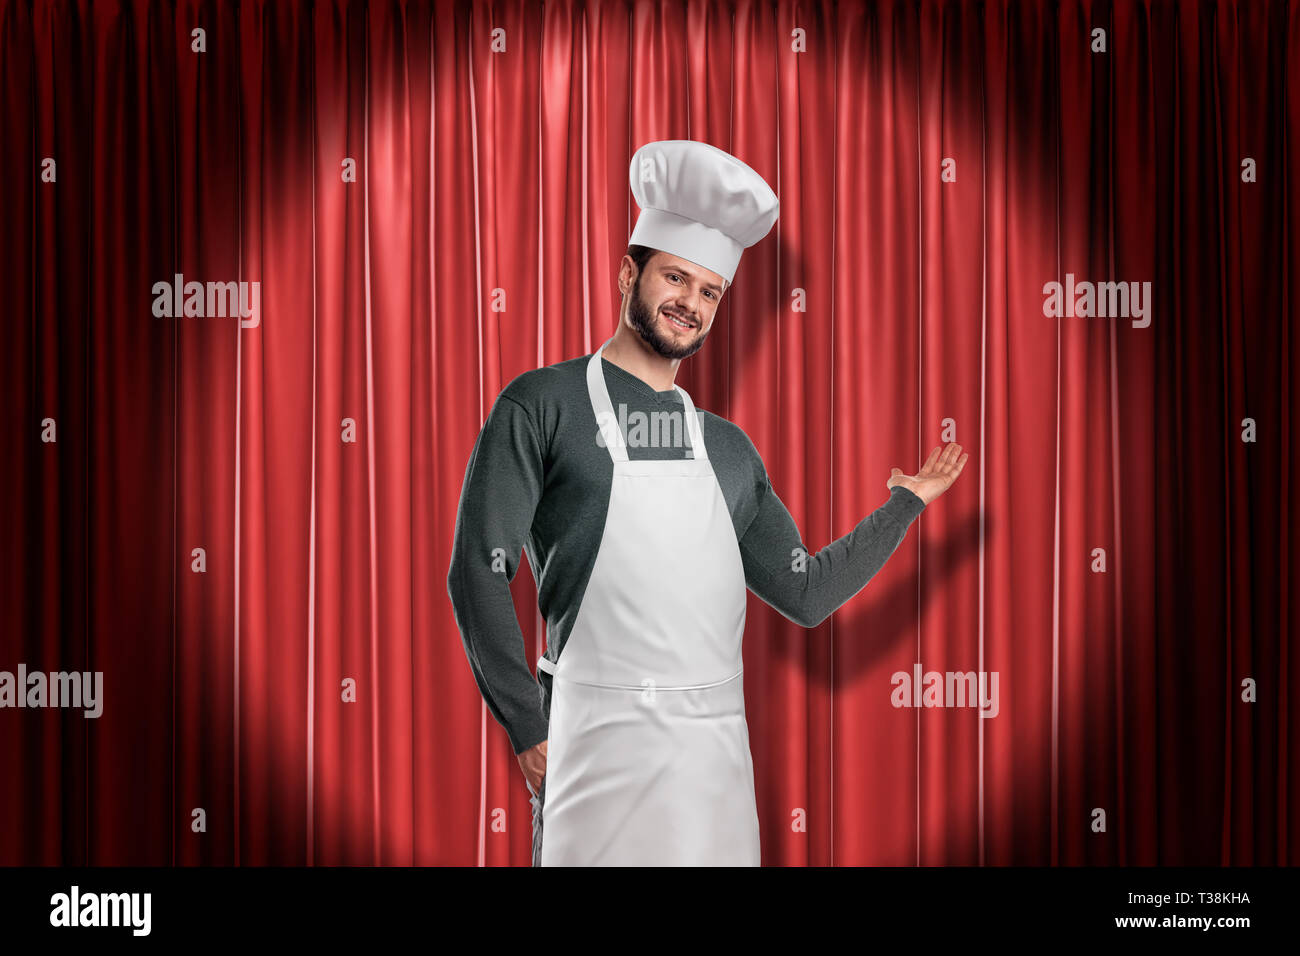 Young smiling handsome chef in white hat and apron lit up by limelight making presenting gesture at red stage curtain. - Stock Image